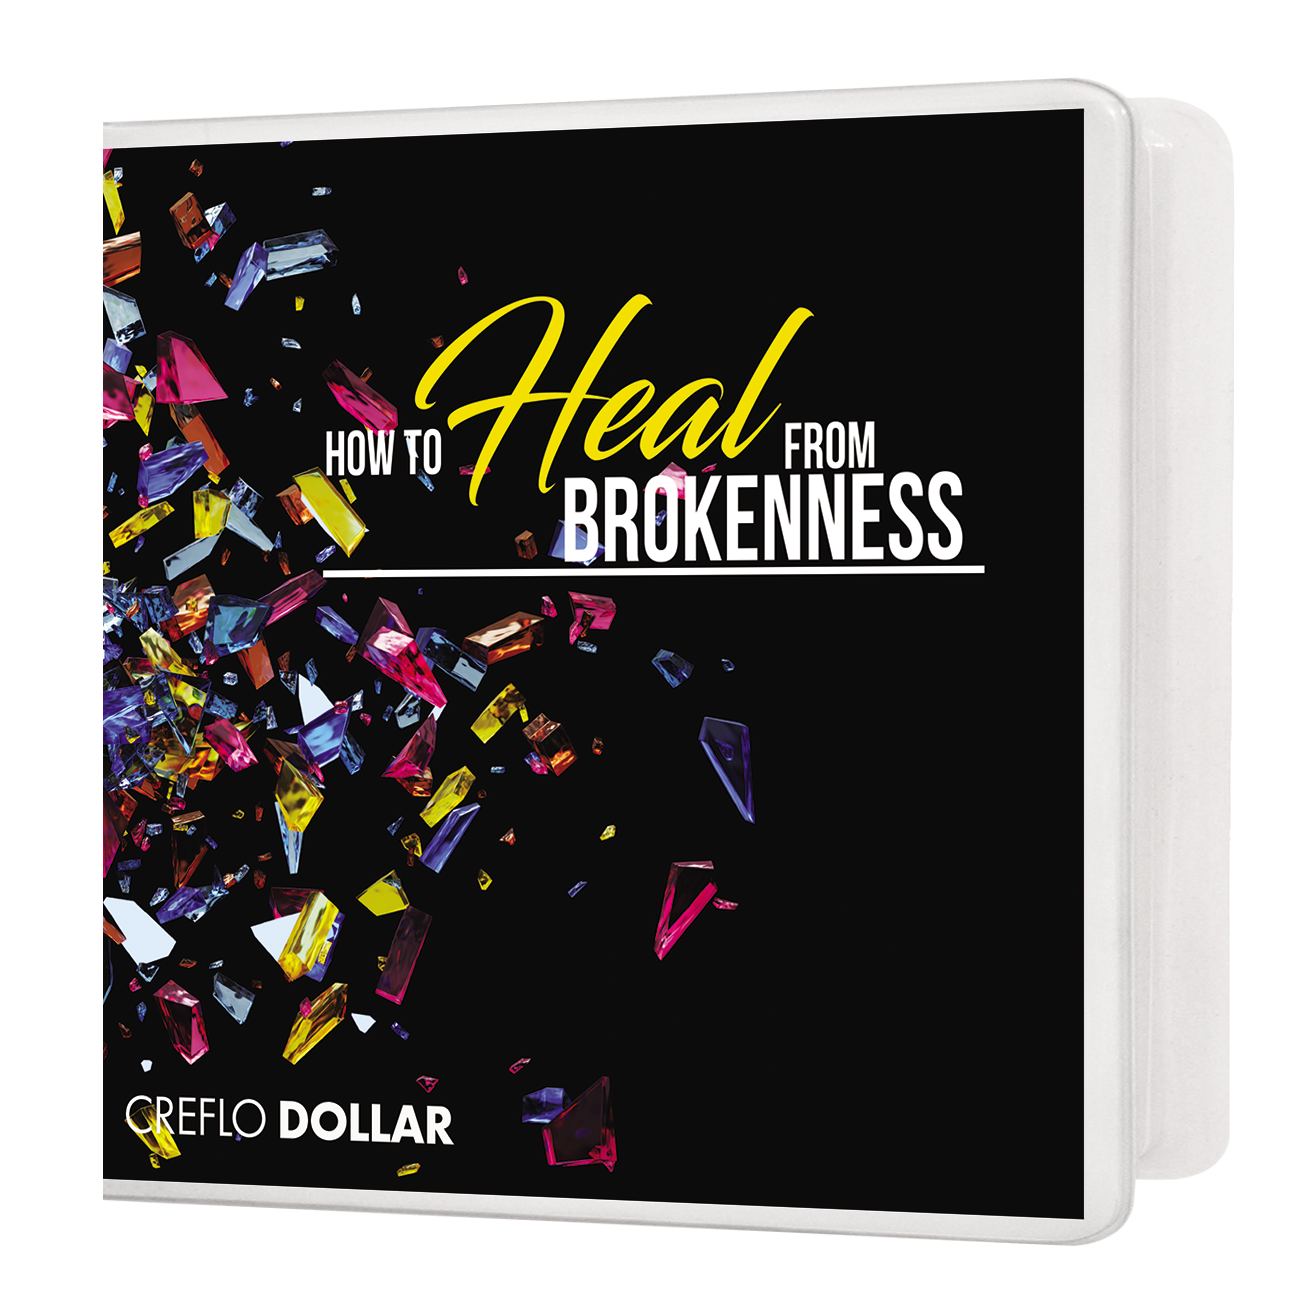 How-to-to-Heal-from-brokkeness-MODWrap_Smart-Mockup_Template